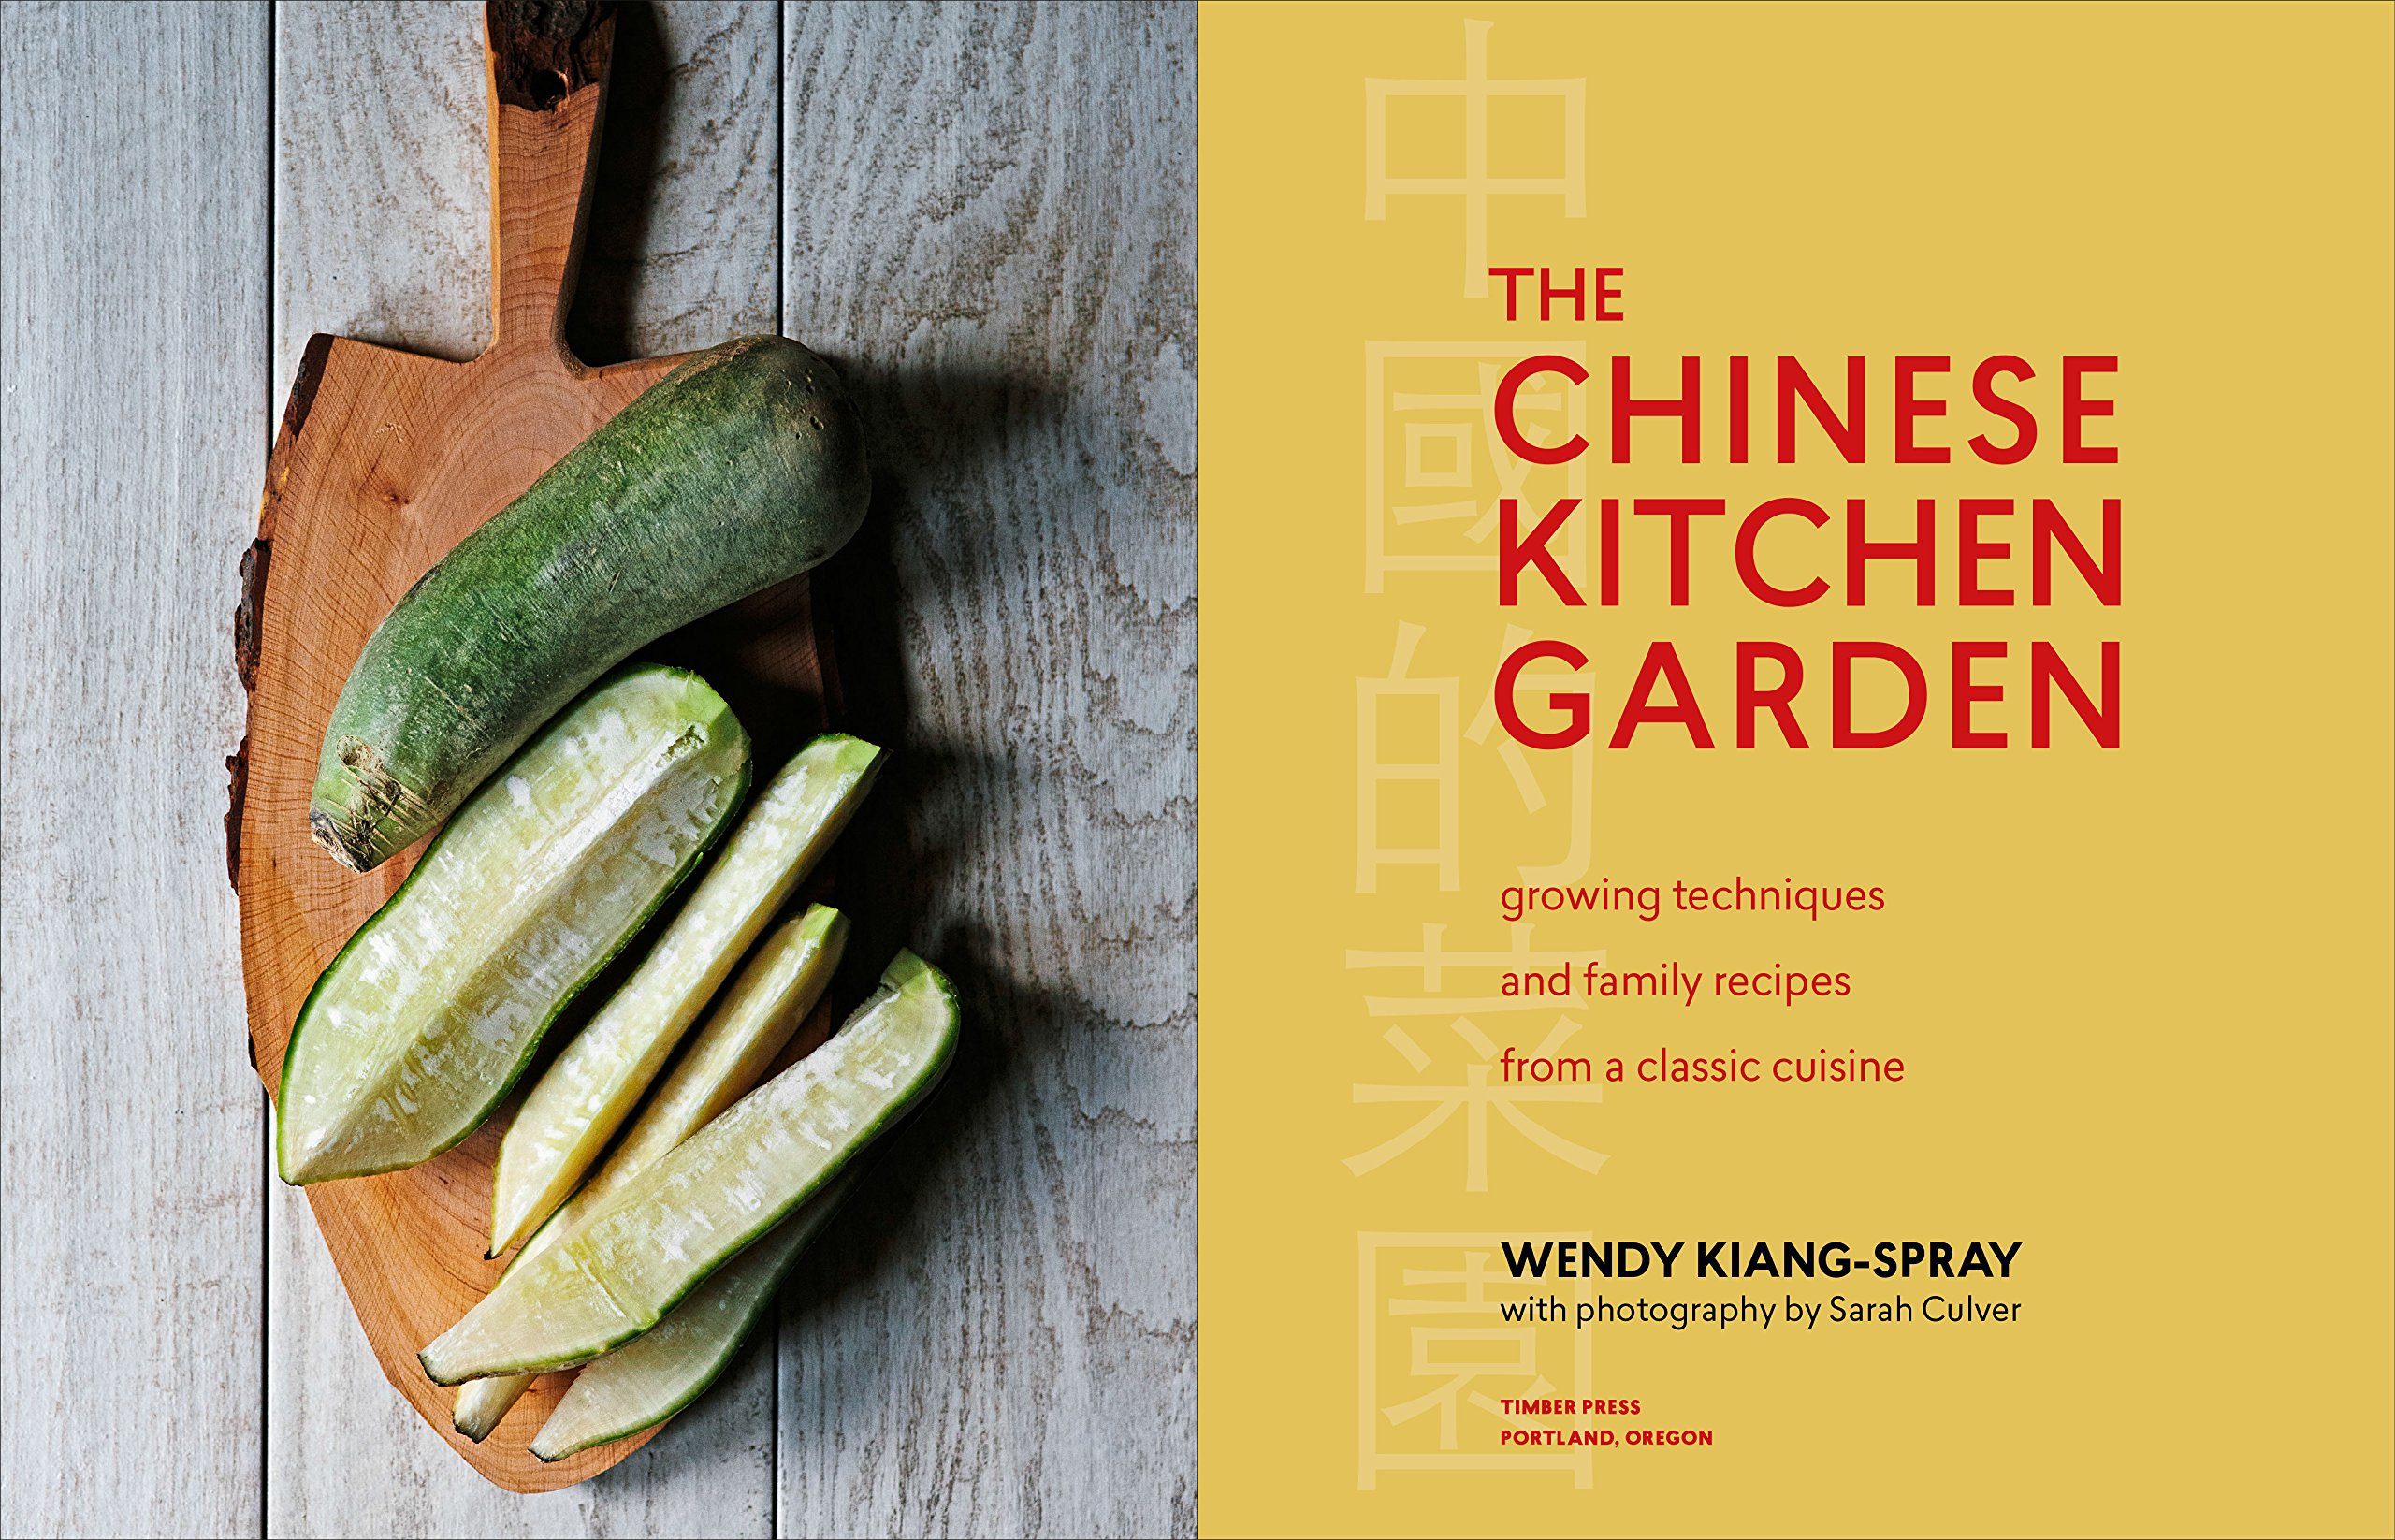 Kitchen Garden Cookbook The Chinese Kitchen Garden Growing Techniques And Family Recipes